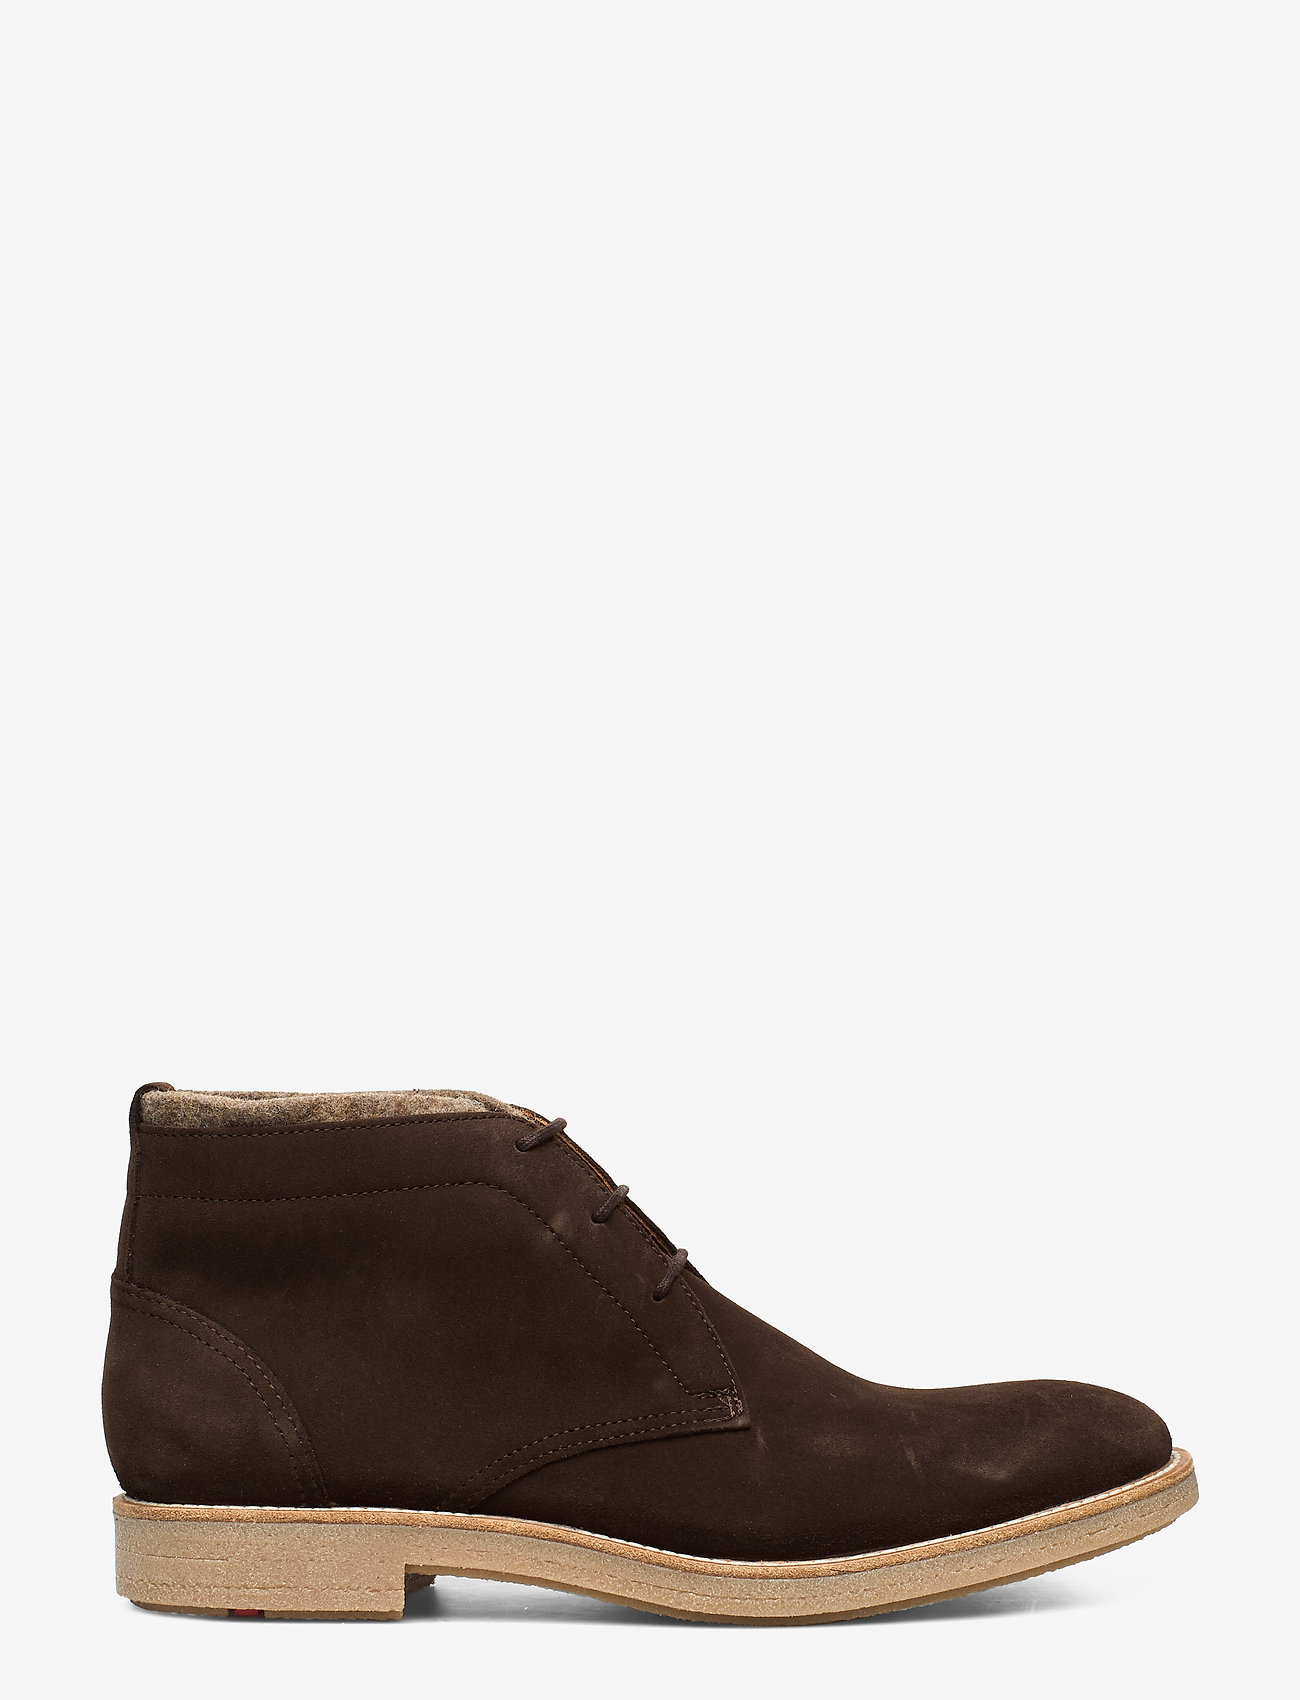 Lloyd - GALVAN - laced boots - 2 - t.d.moro/brown - 1